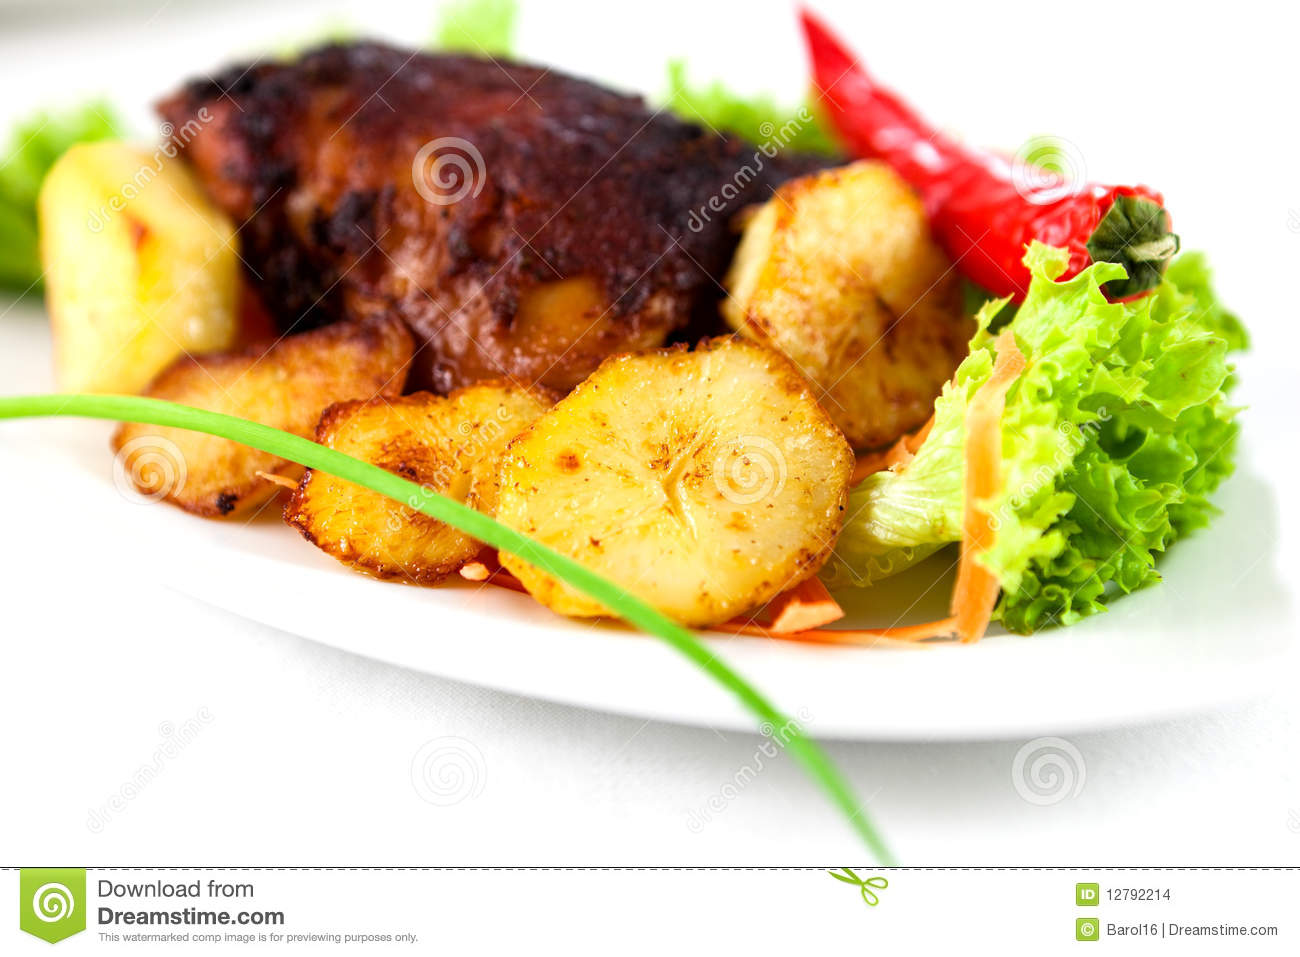 Roast Chicken With Baked Potatoes Stock Images - Image: 12792214